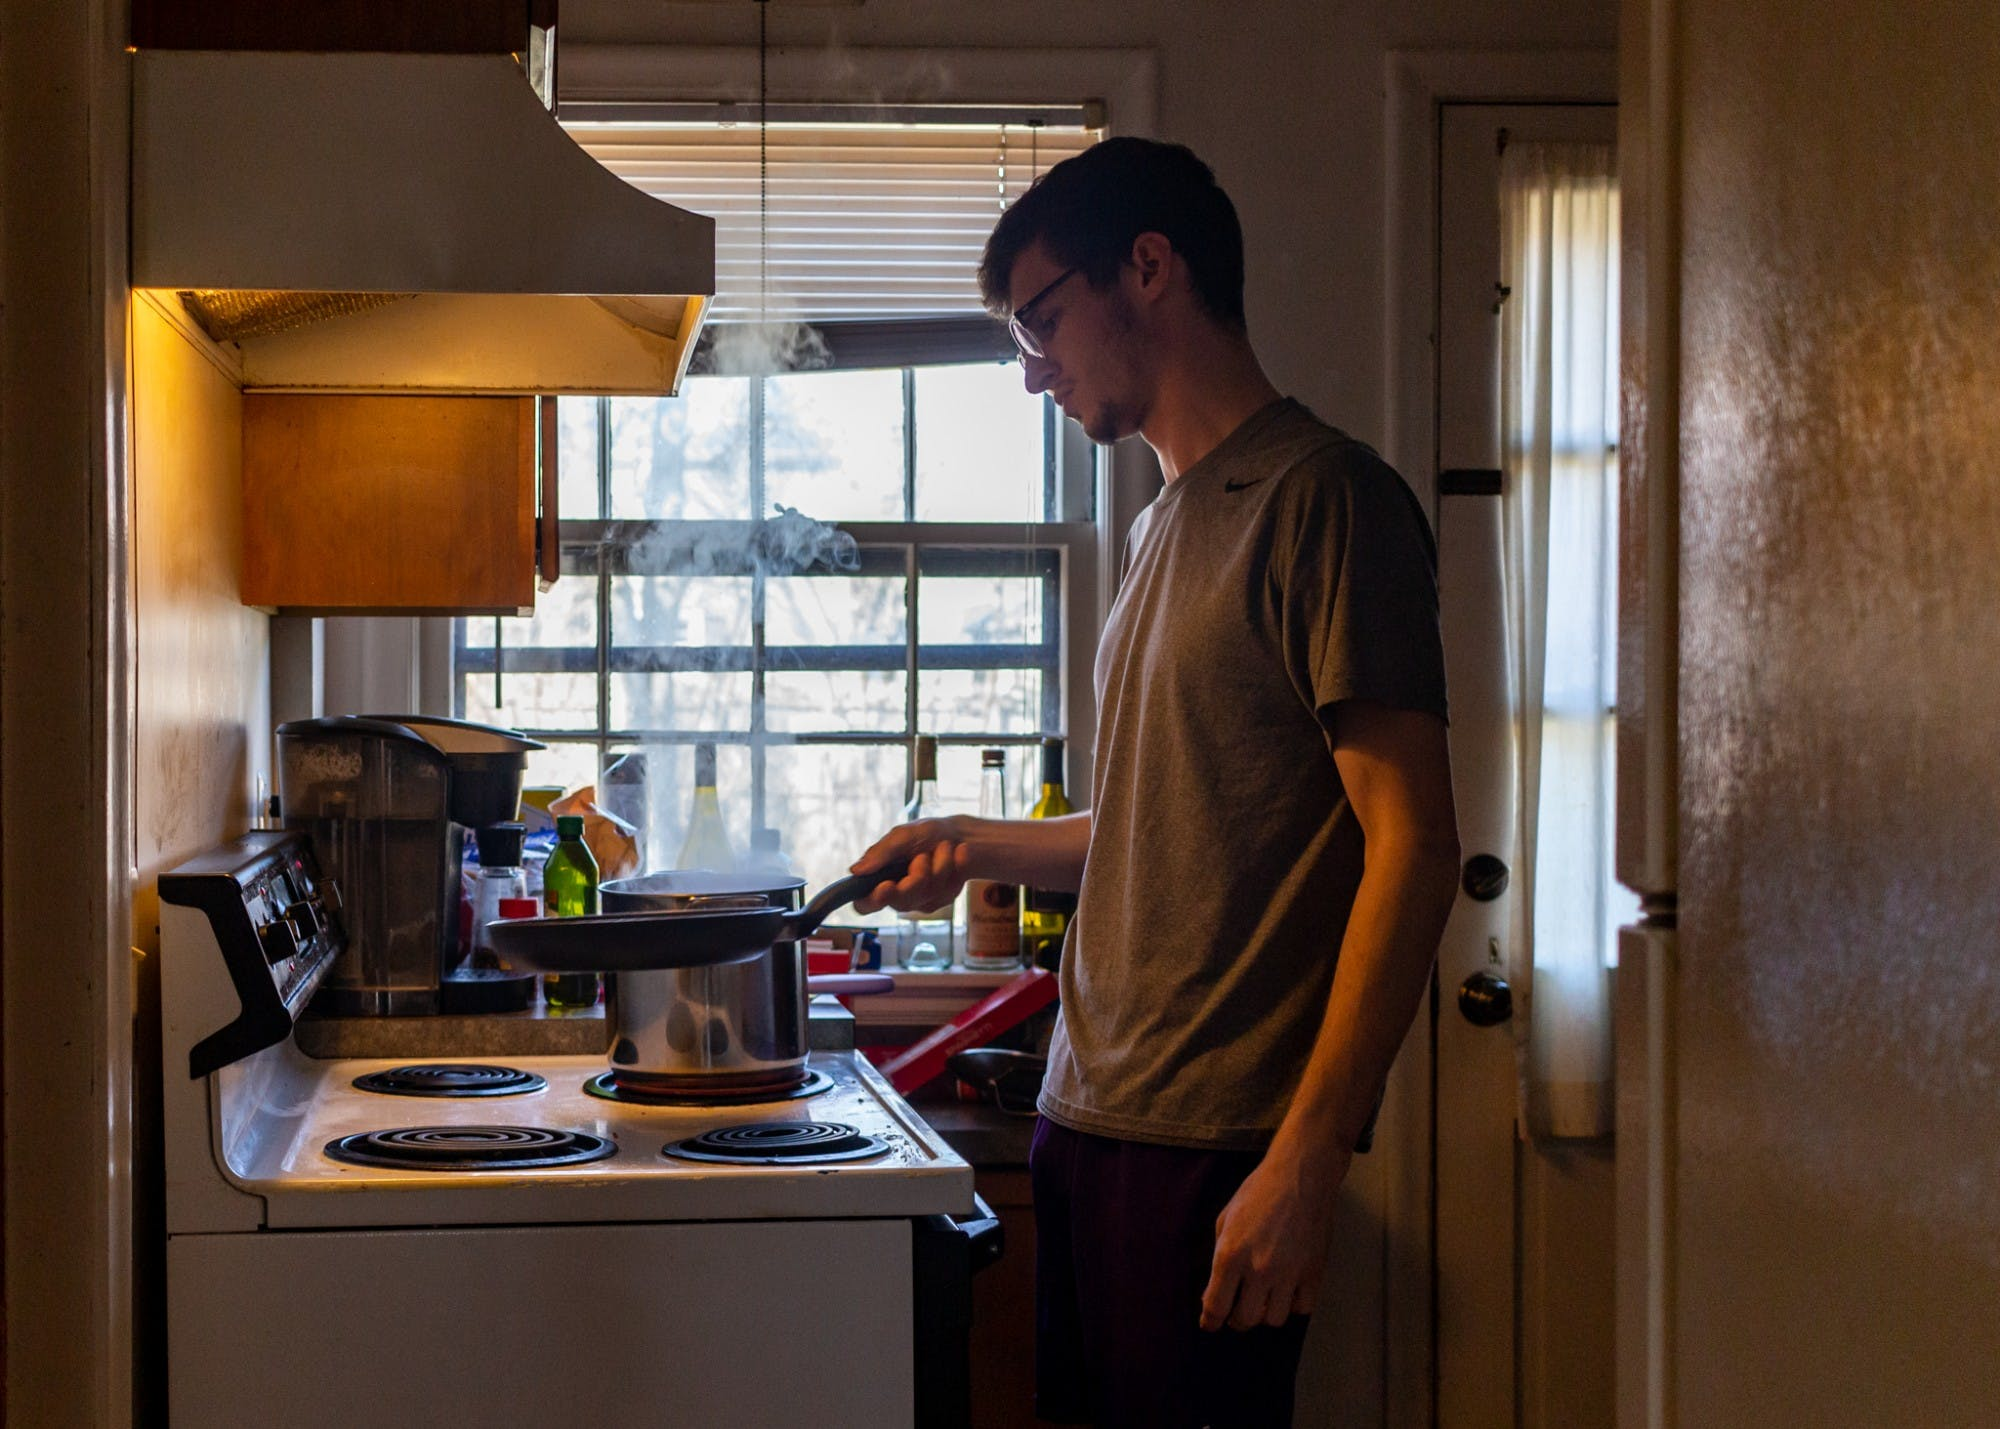 A person wearing glasses, a t-shirt and shorts holds a frying pan above a stove in a kitchen.